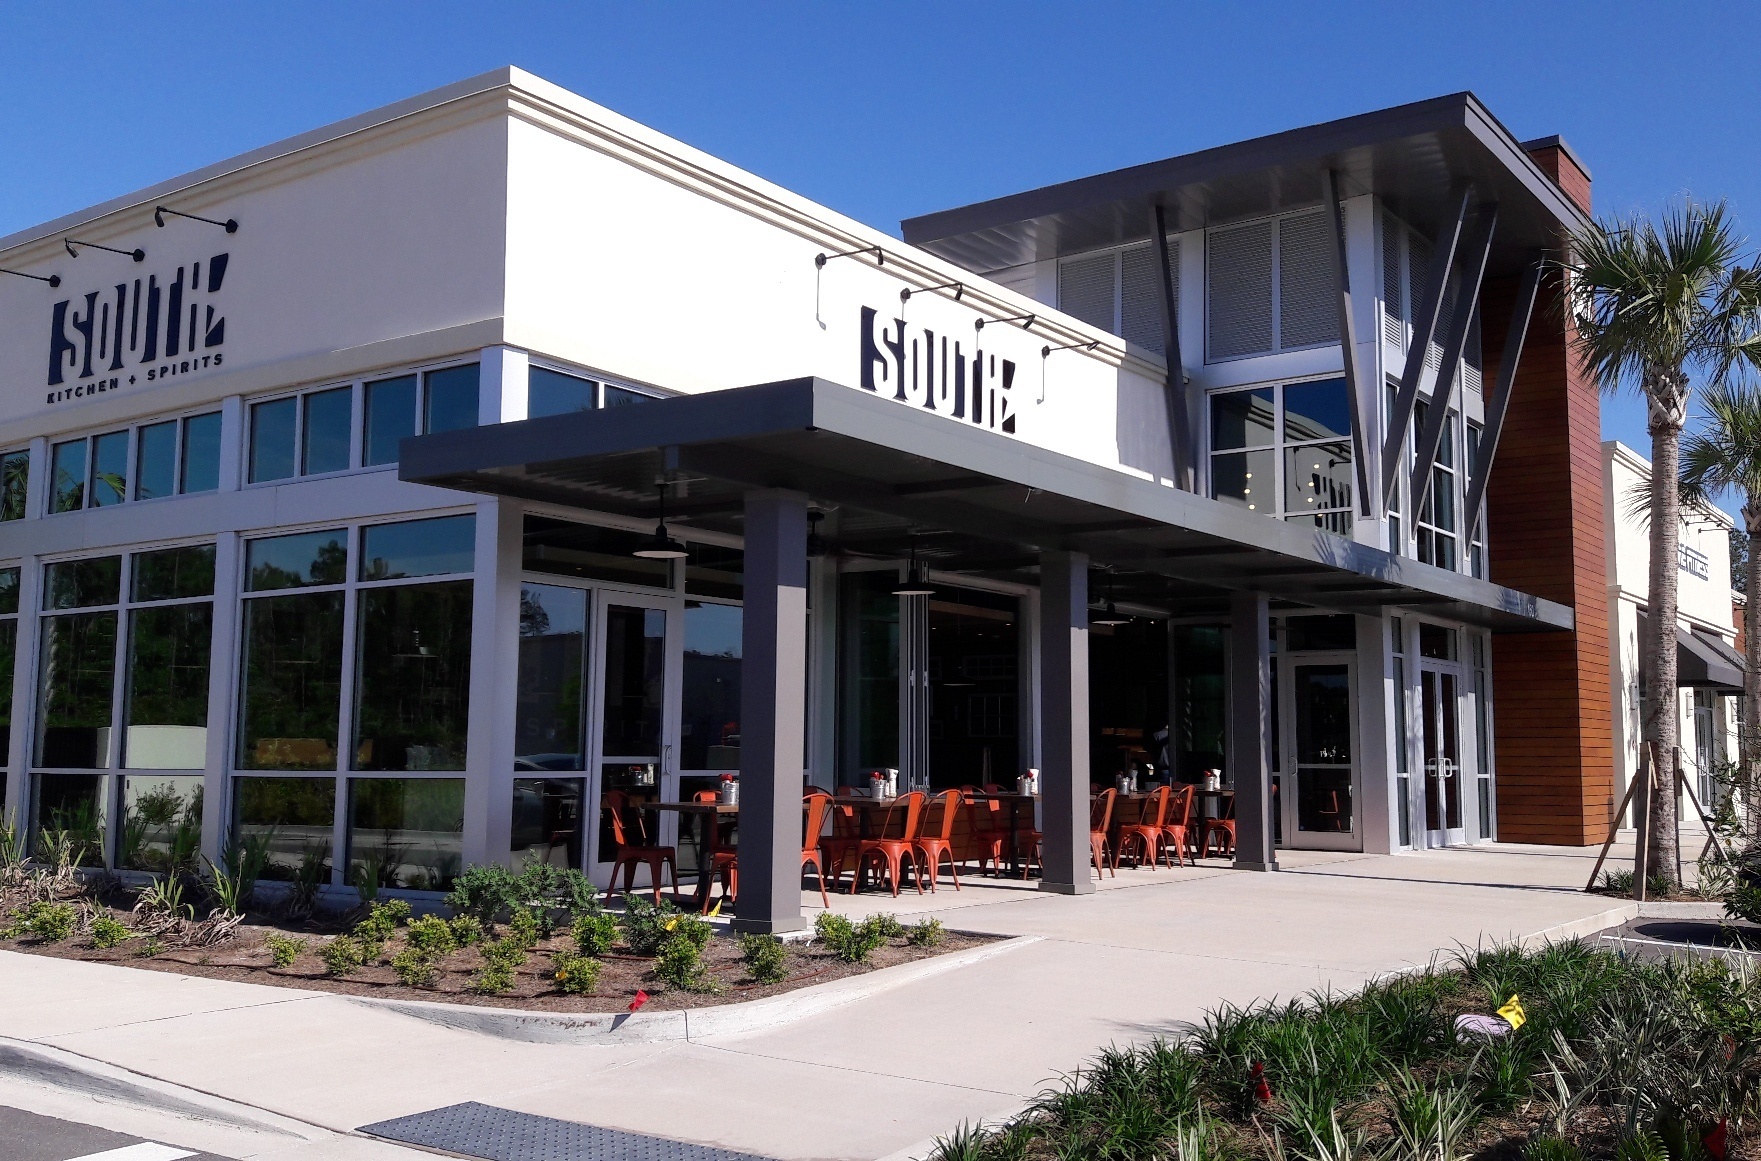 South Kitchen and Spirits at Nocatee